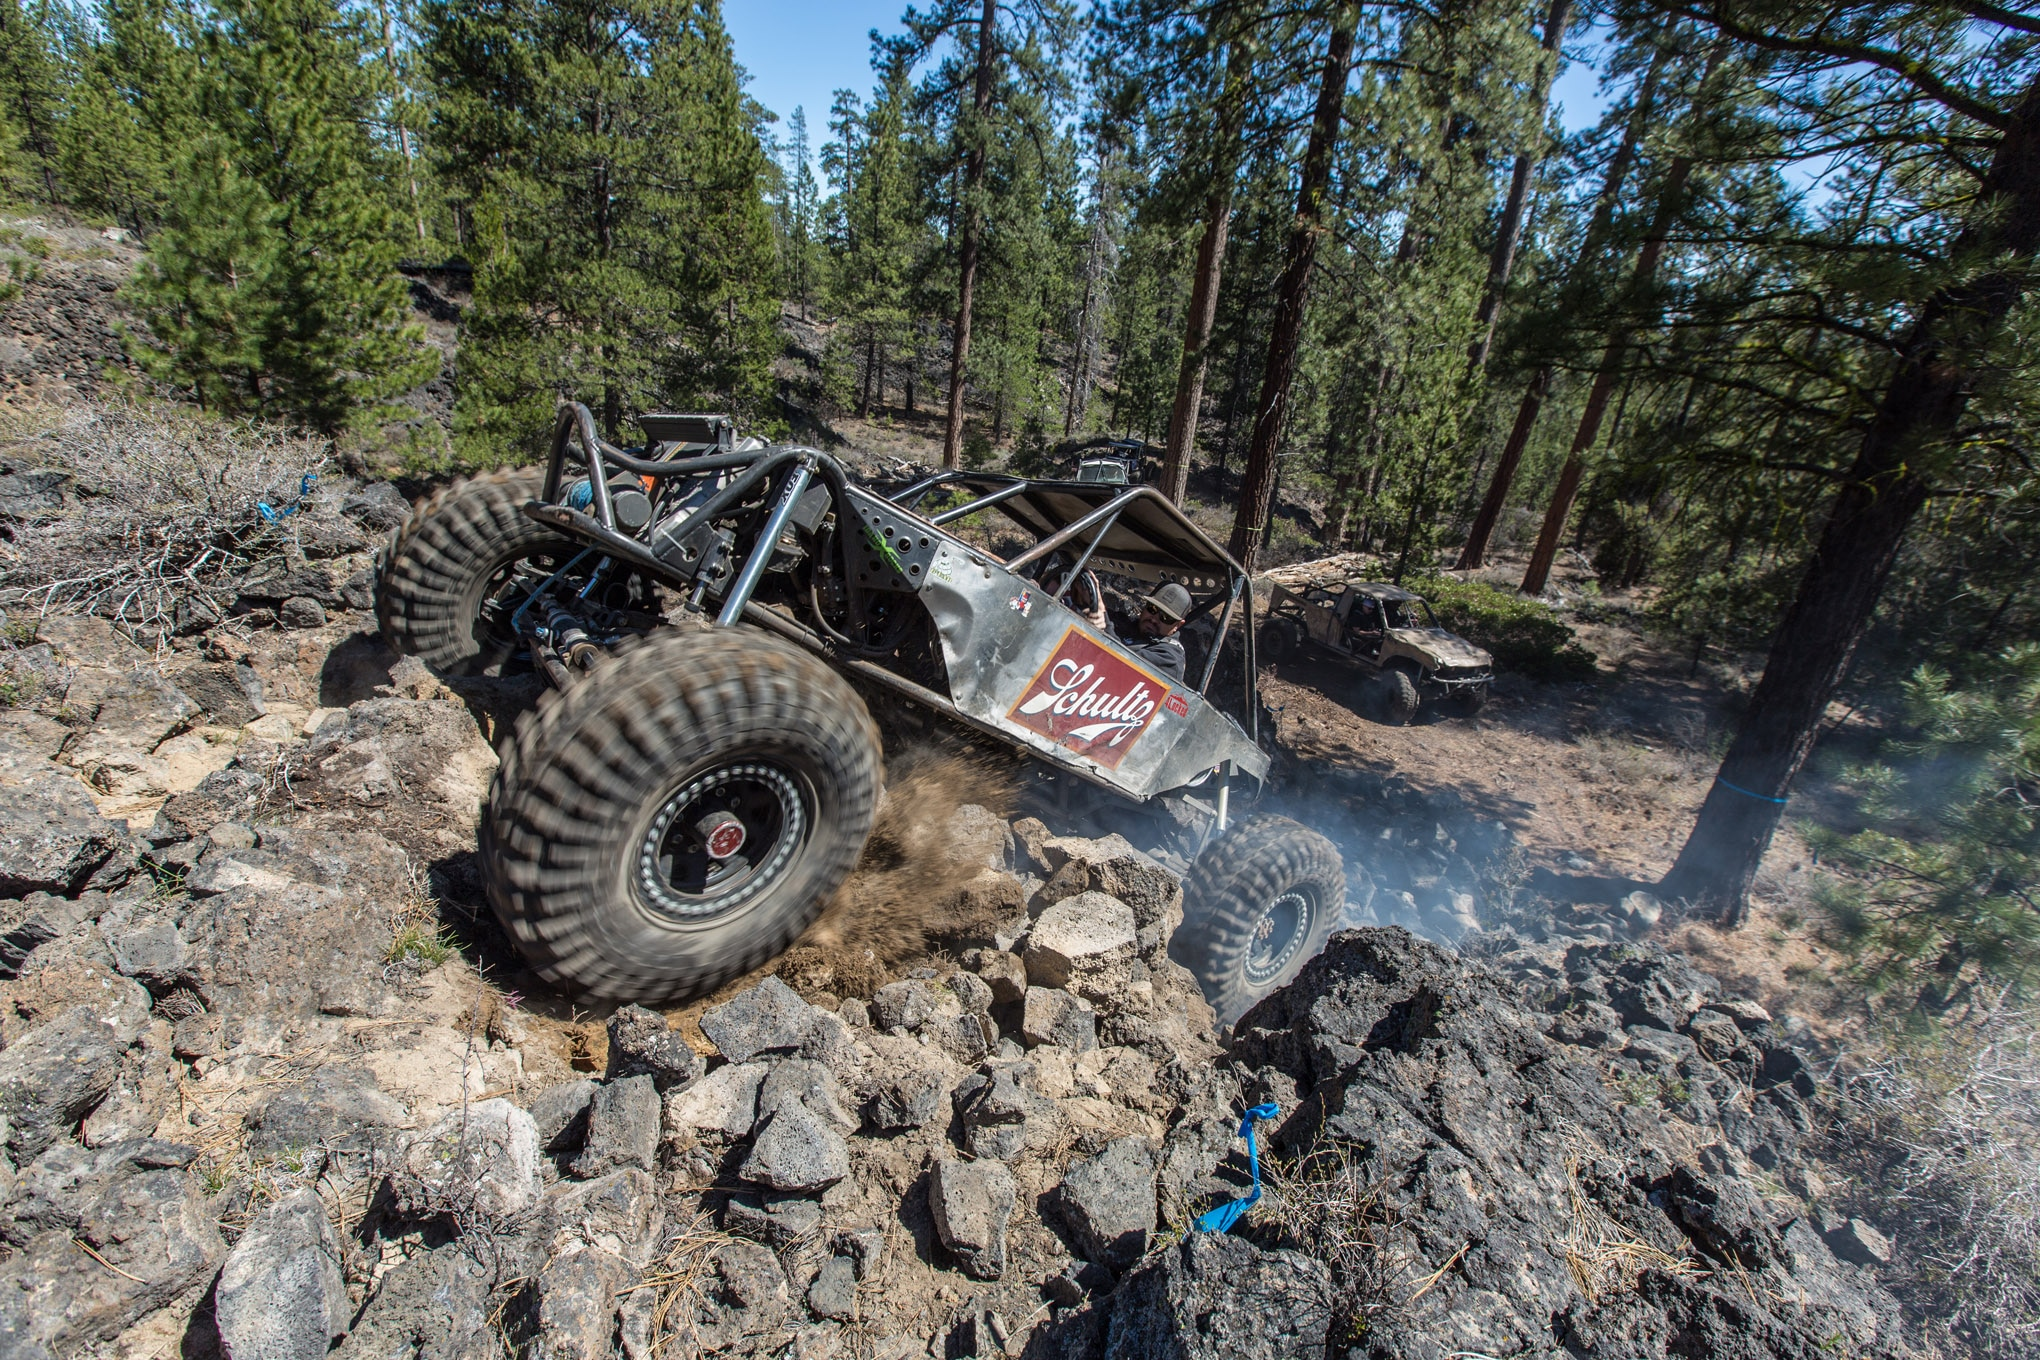 Mark Schultz has the formula for a functional Oregon rockcrawler. A turbocharged 22R is mated to a manual transmission and dual transfer cases. From there, air shocks and links locate locked 1-ton axles capped with 40-inch Maxxis Trepadors. With a skilled driver like Schultz behind the wheel this is an incredibly capable combination.